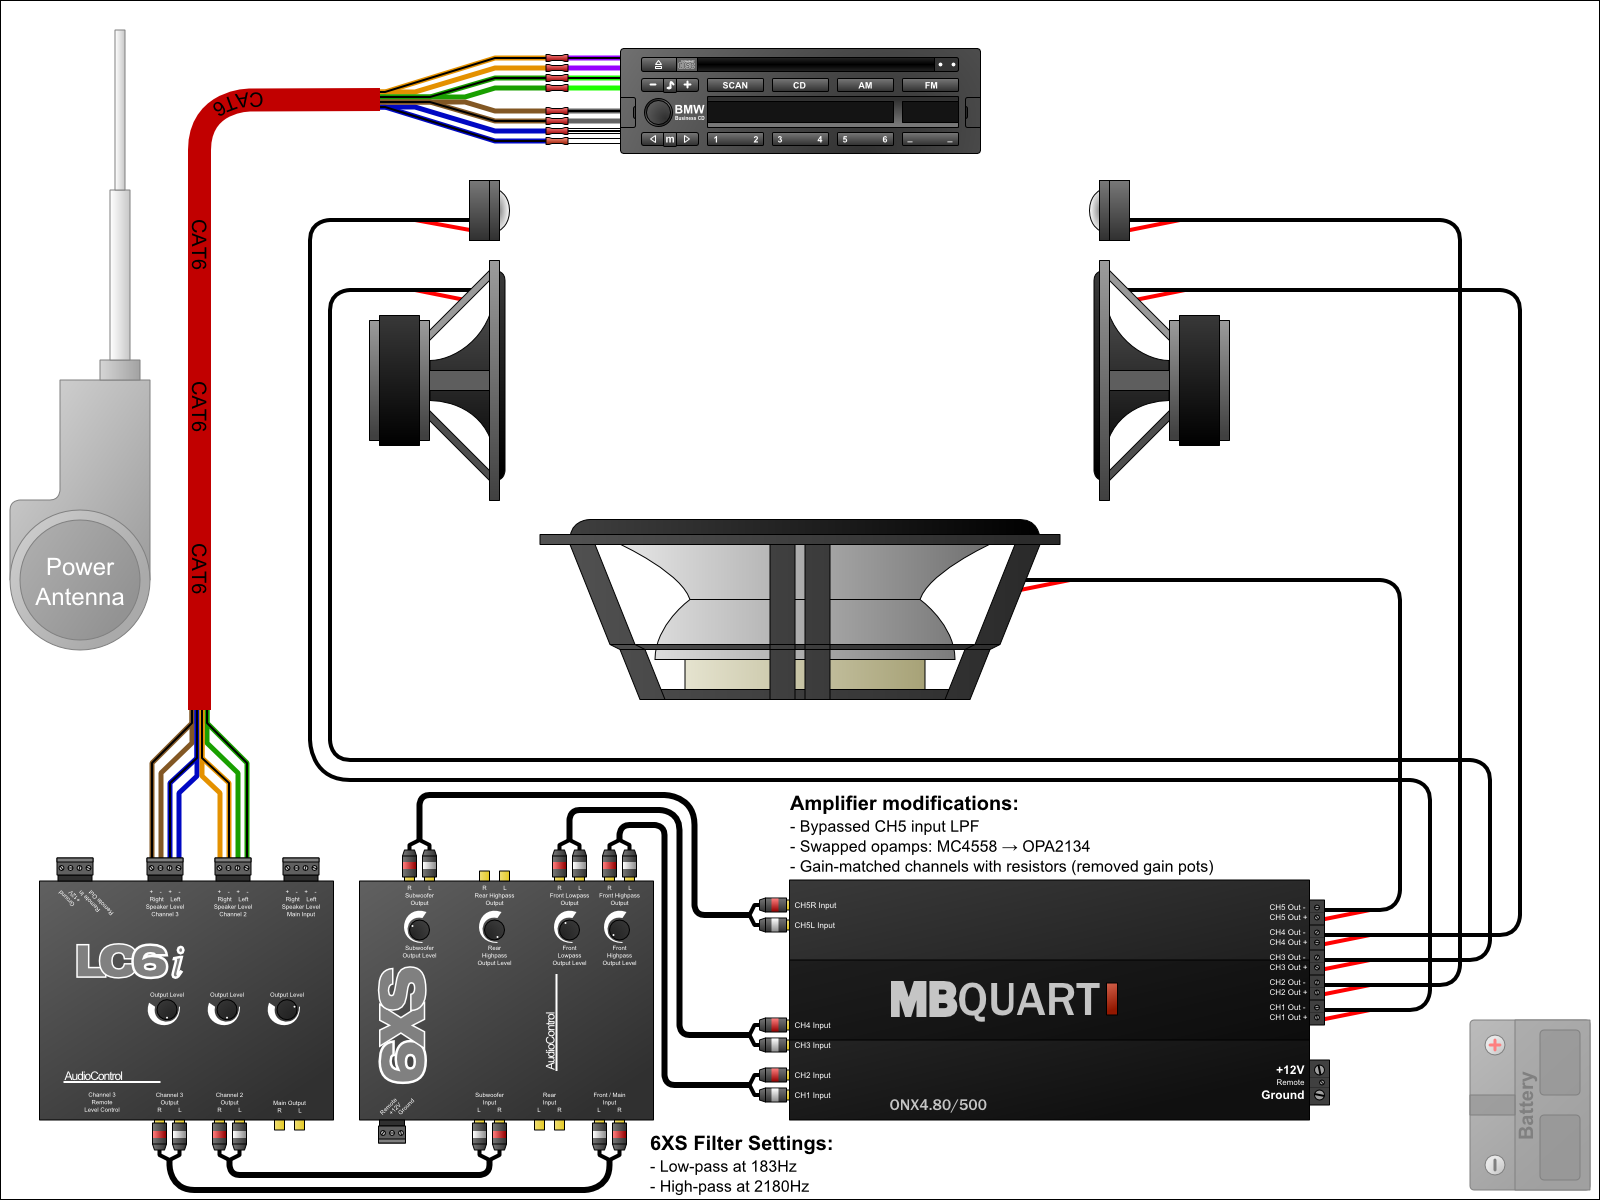 rockford fosgate wiring diagrams question on how to wire aftermarket amp to new speakers  question on how to wire aftermarket amp to new speakers